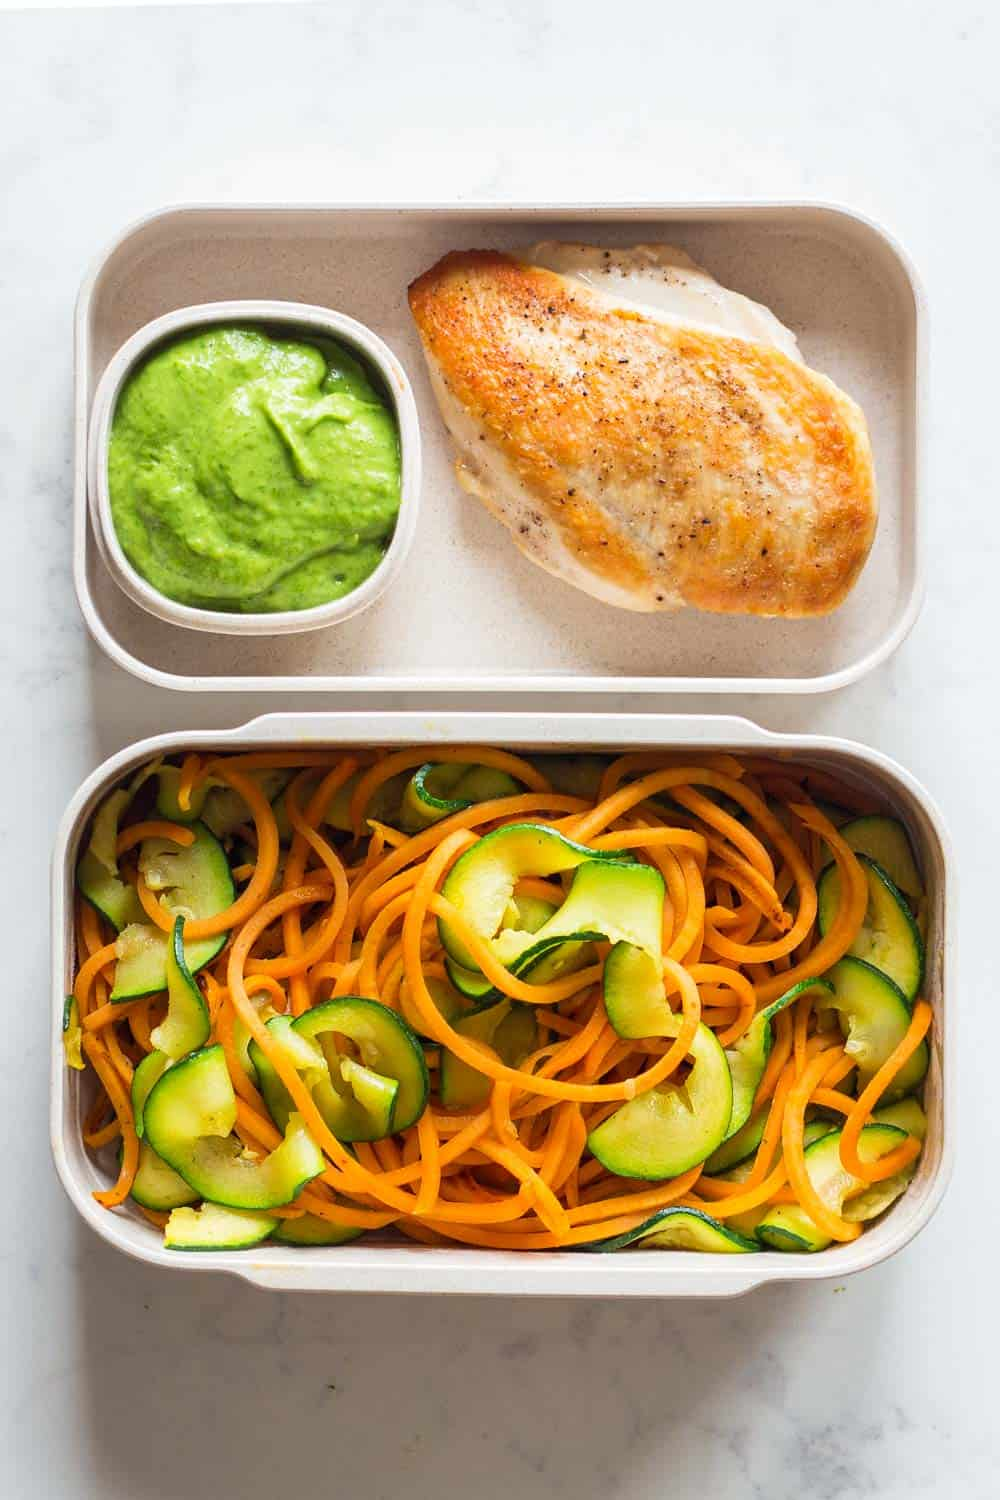 Clean Eating Dinner for a Clean Eating Meal Plan - pan-fried chicken breast, stir-fried spiralized sweet potato and zucchini with an avocado cilantro dressing.